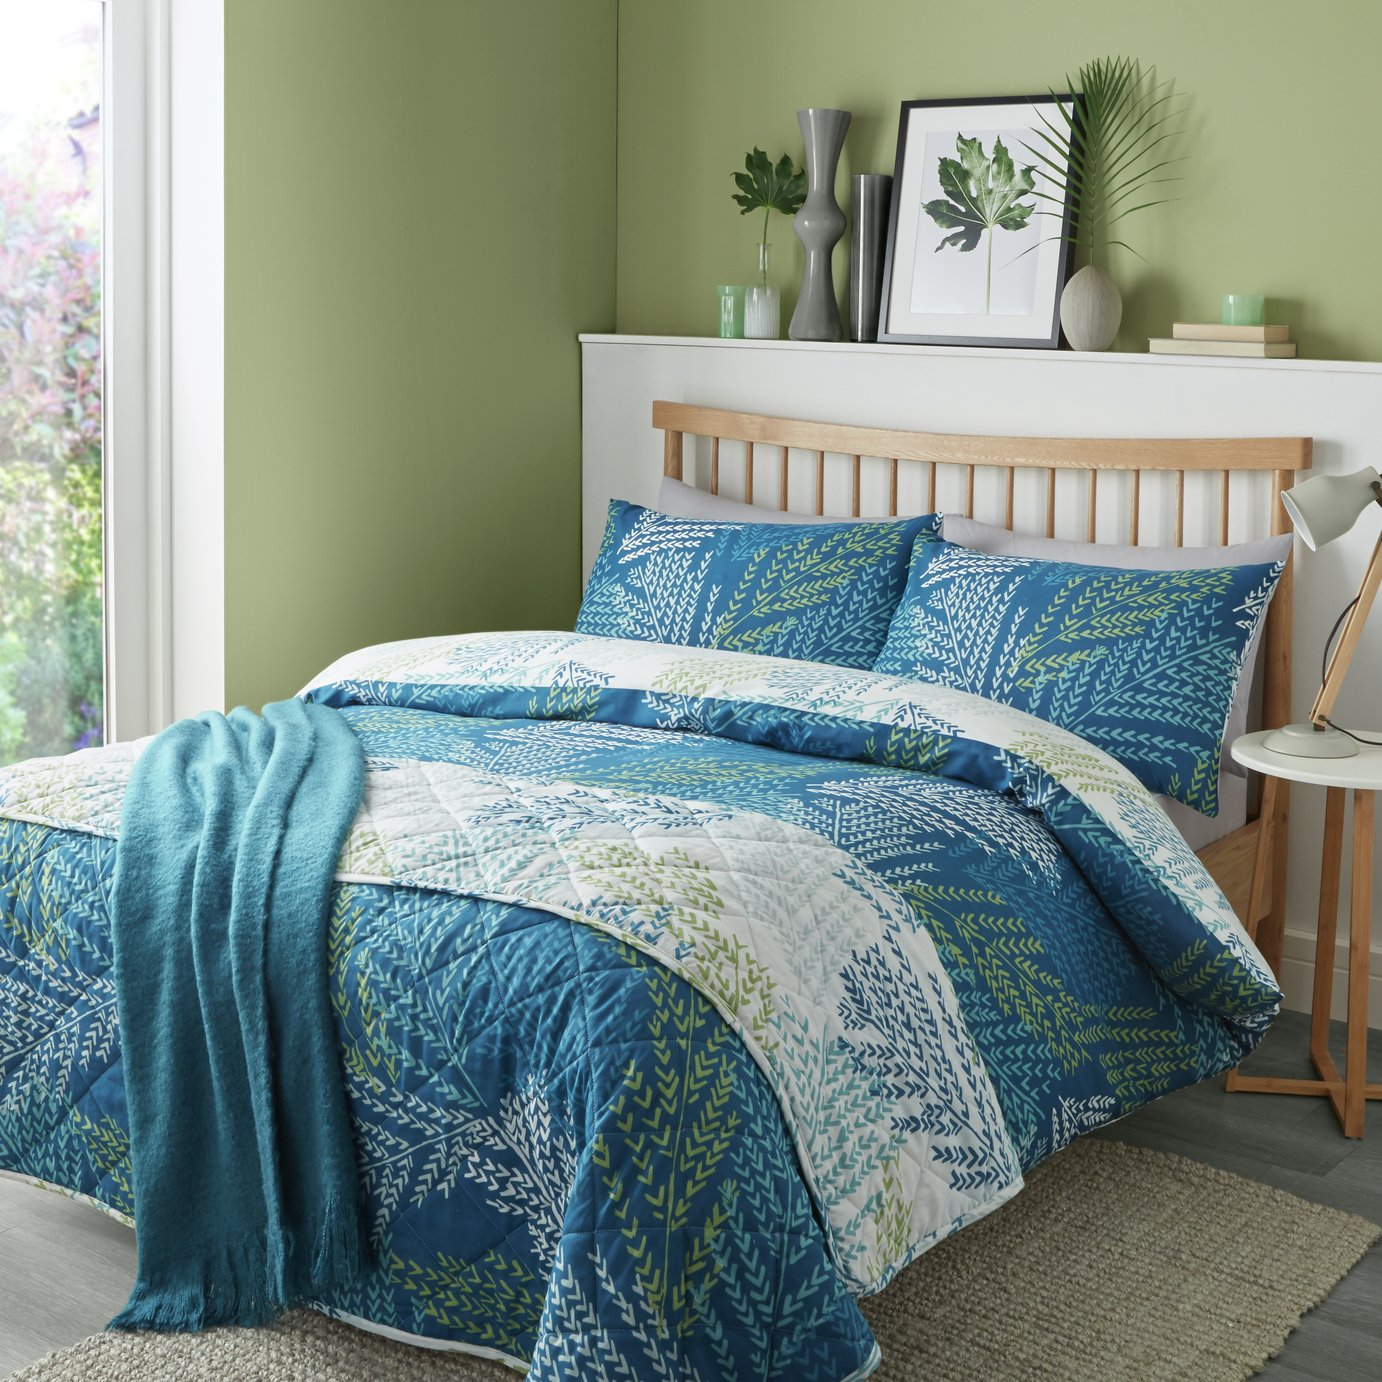 Image of Fusion Alena Teal Bedding Set - Single